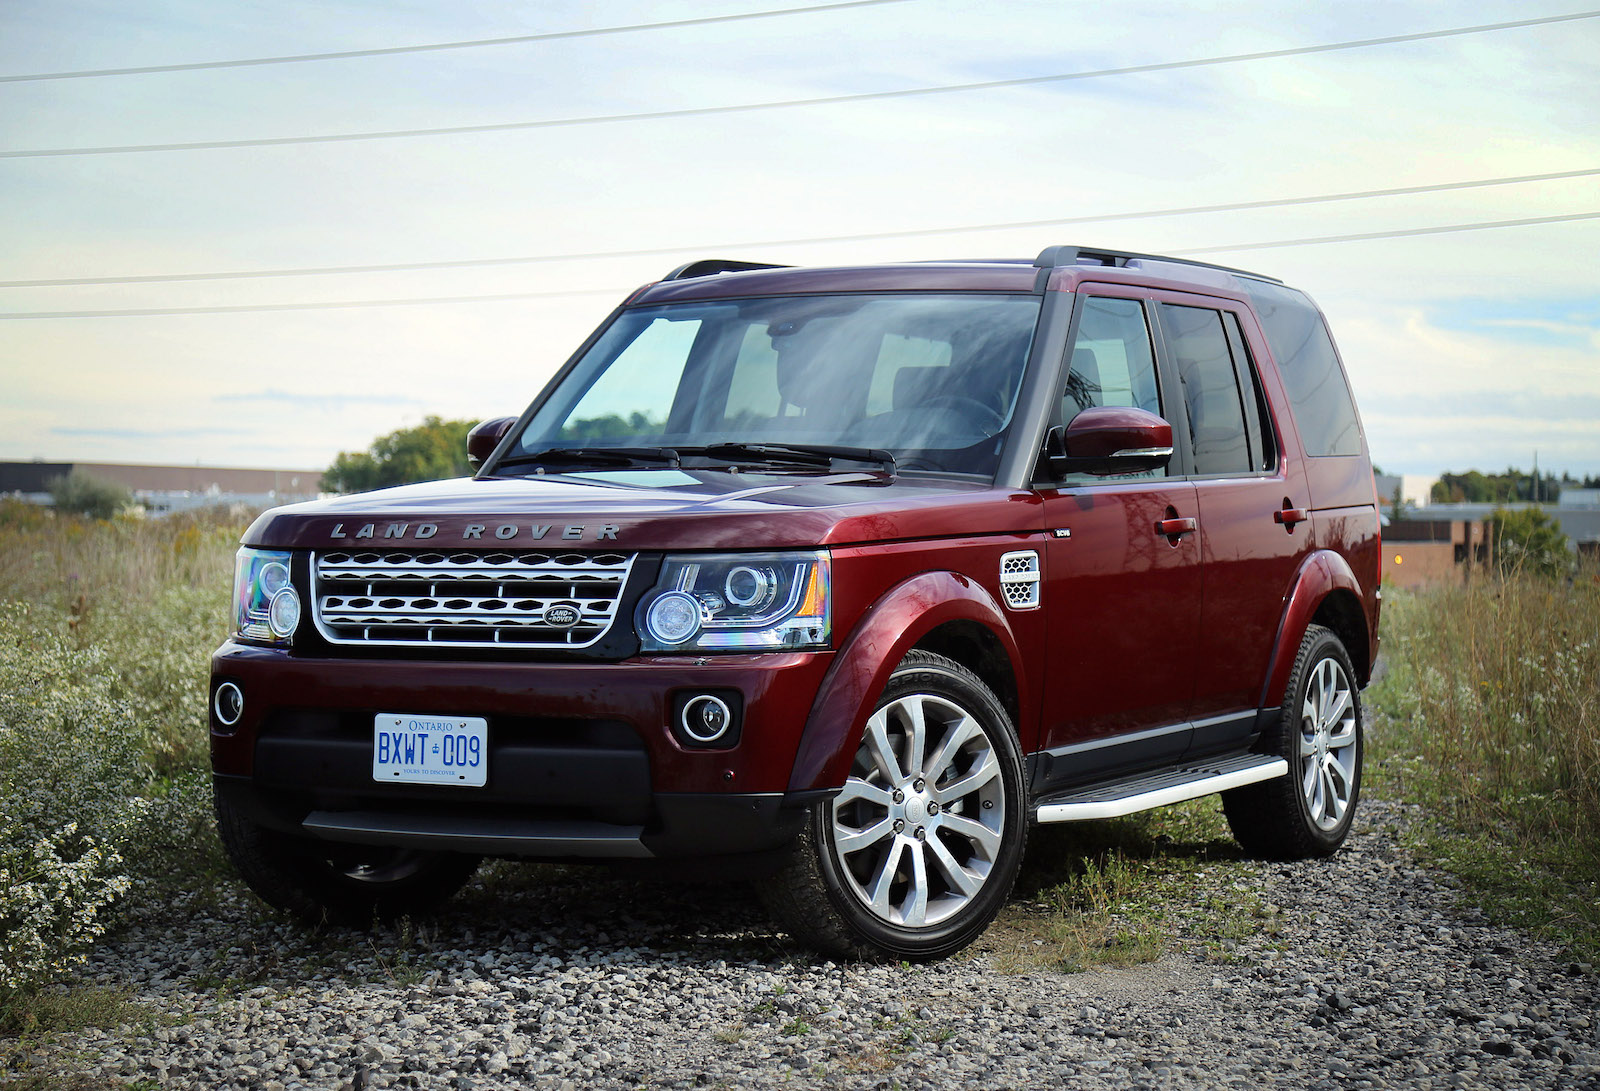 land road rover vehicles cost en canada discovery landrover index dfc ext off of retirement suv